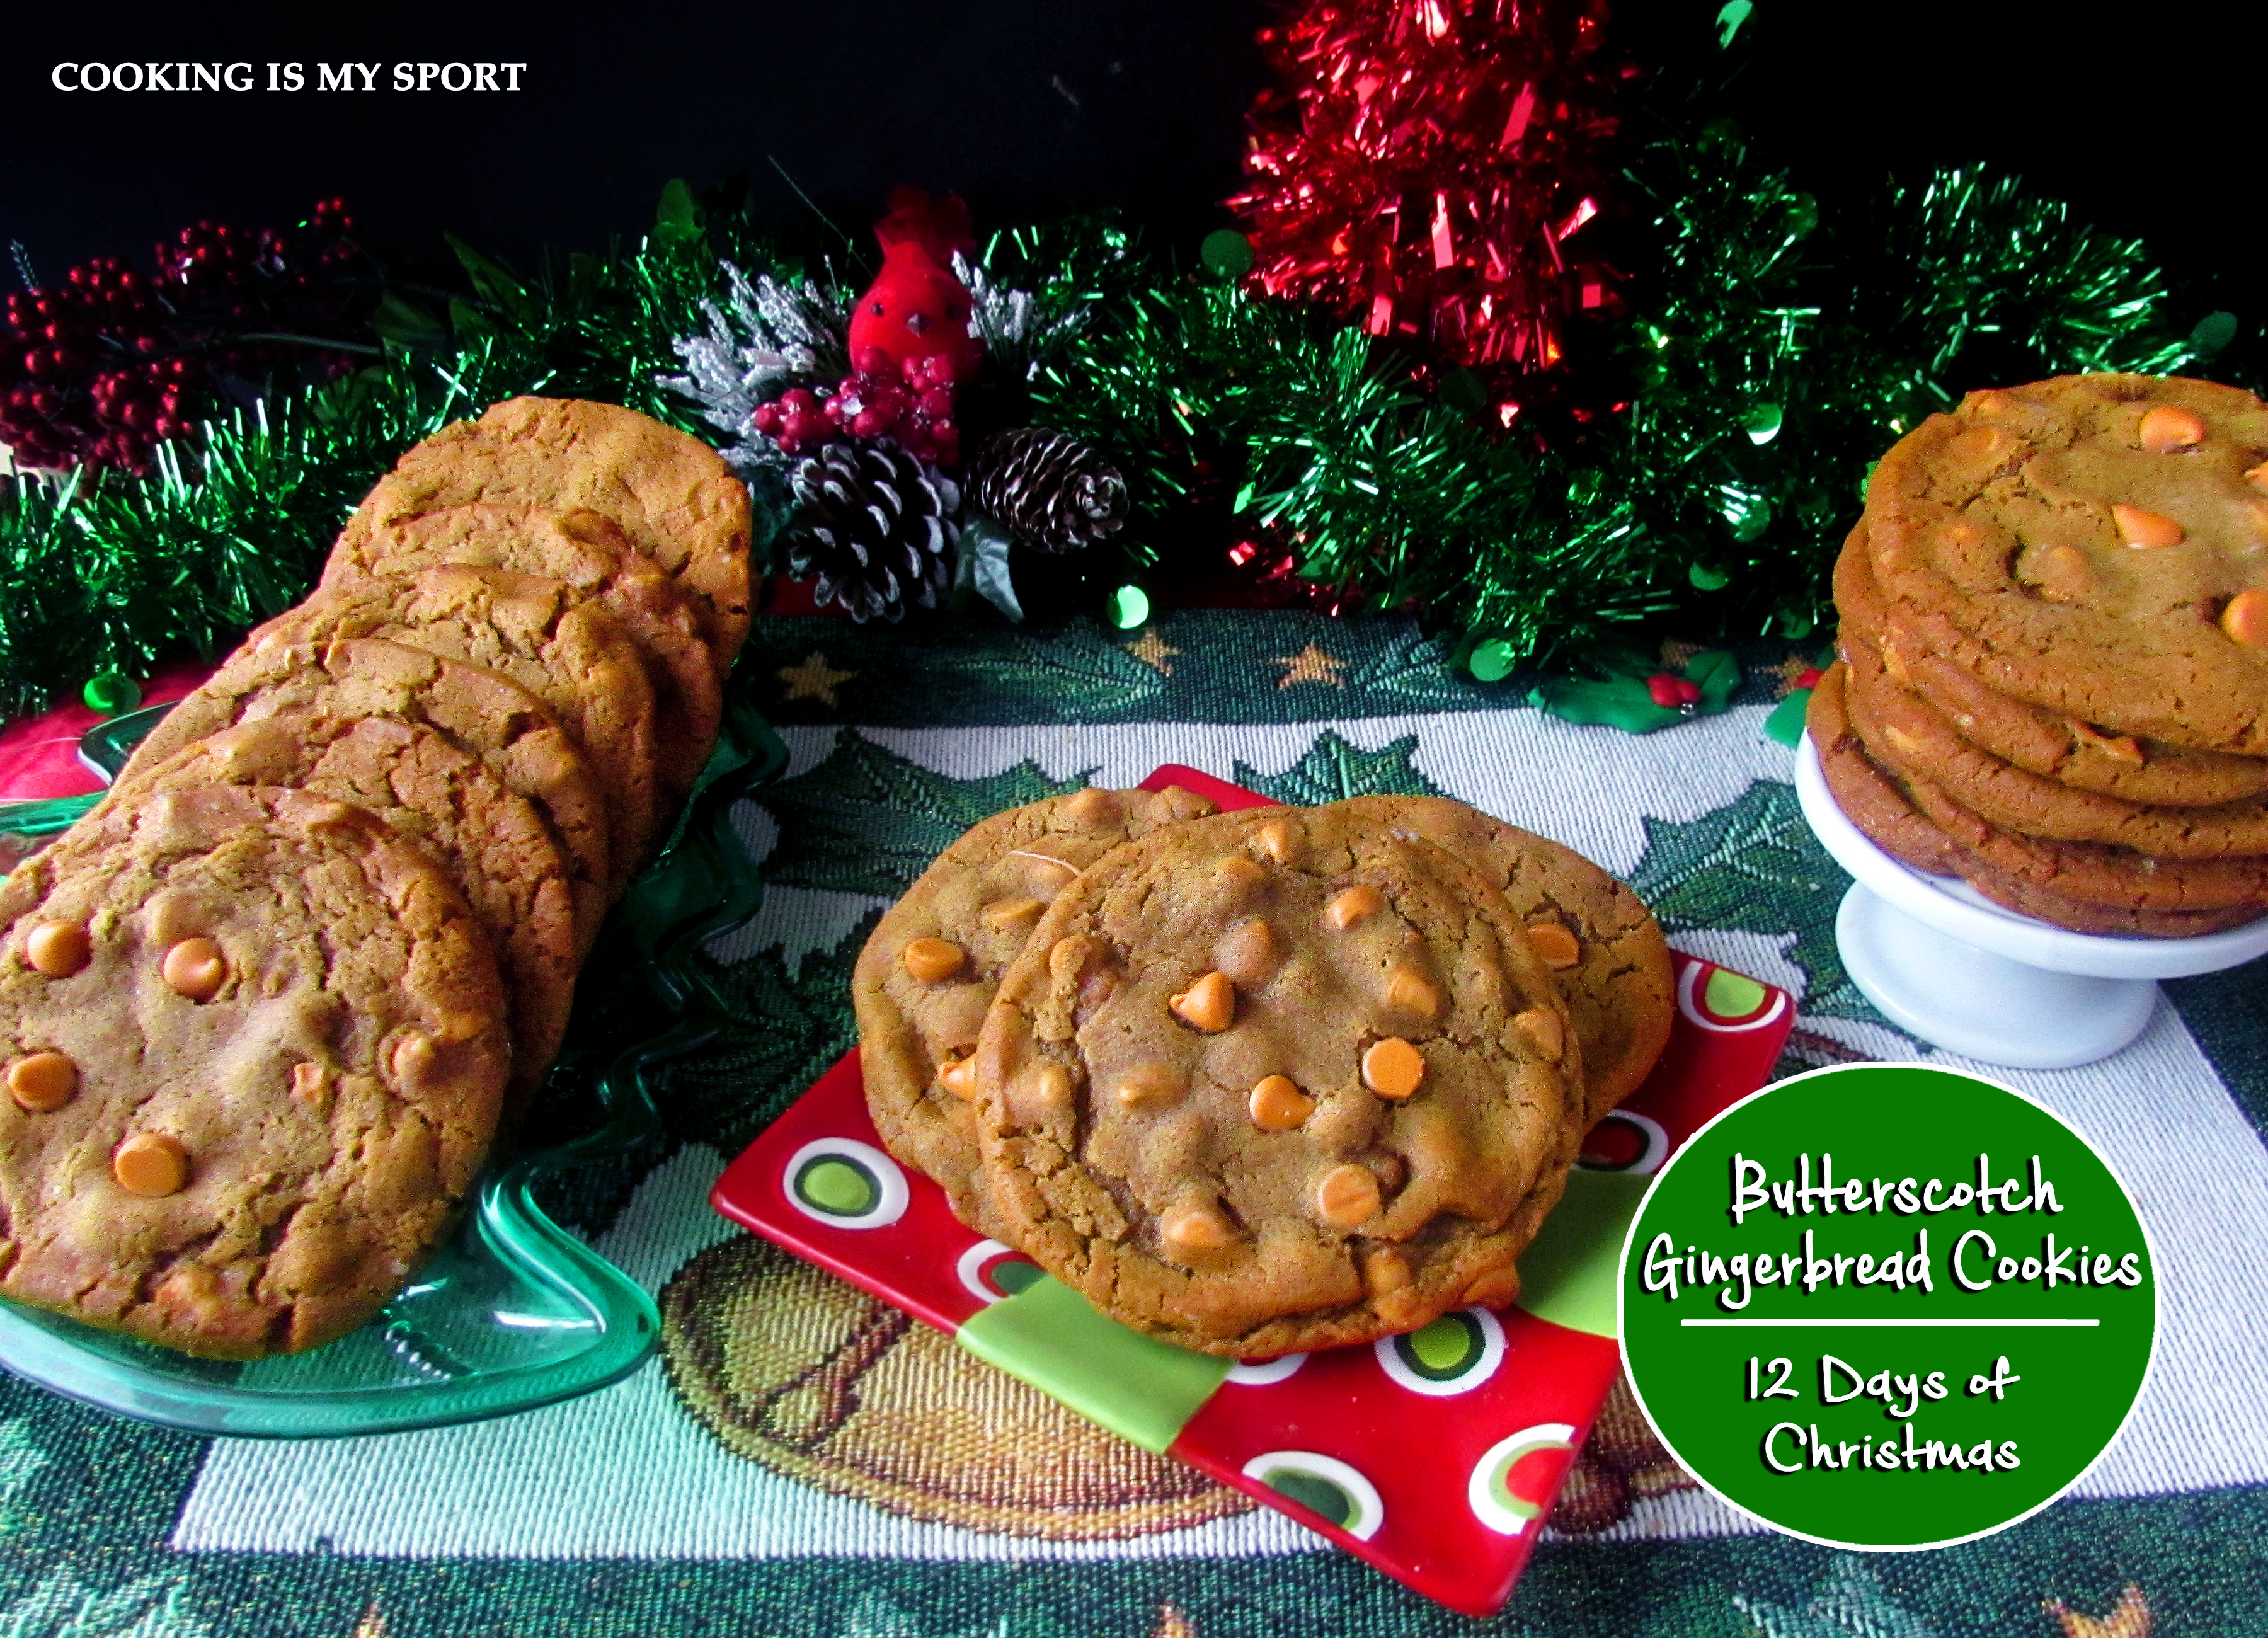 Butterscotch Gingerbread Cookies4